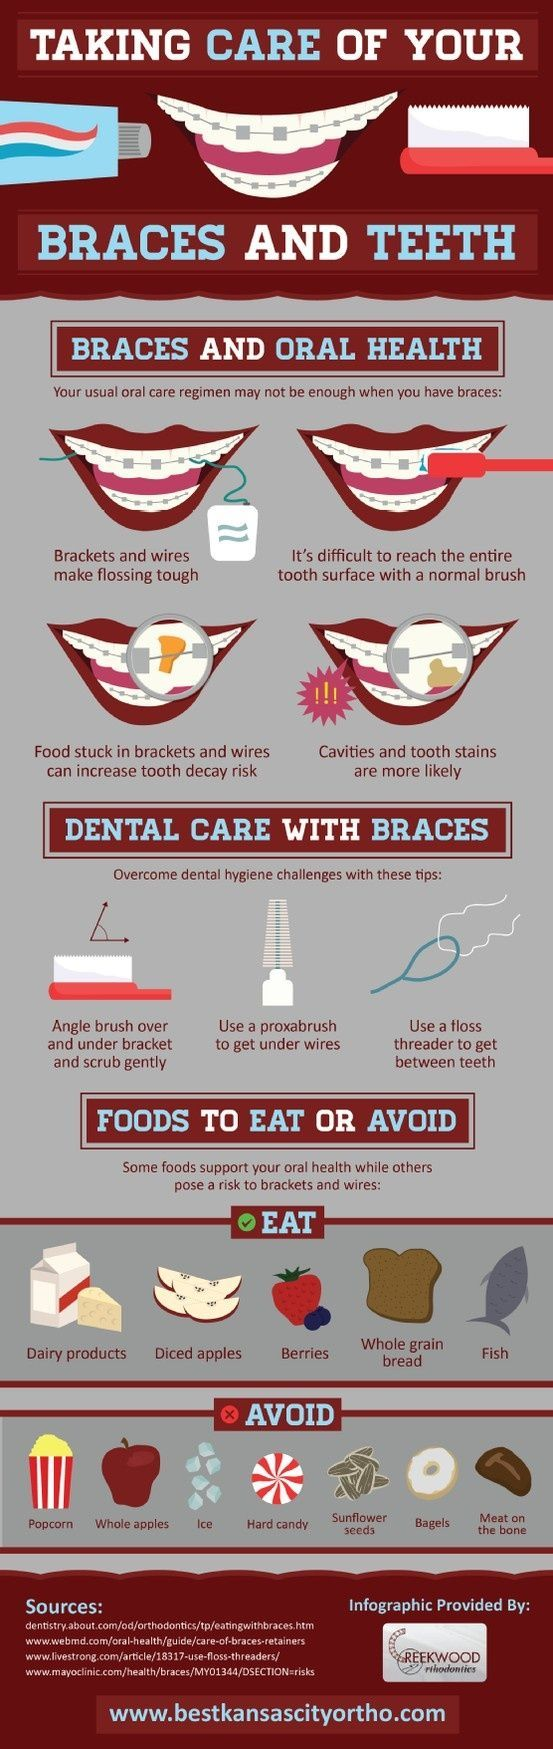 Wearing braces? If so, cleaning your teeth may be more difficult than it was without these orthodontic devices! Take a look at this Kansas City braces infographic for professional orthodontist tips for maintaining oral health during this treatment.  #DentistGrantsville